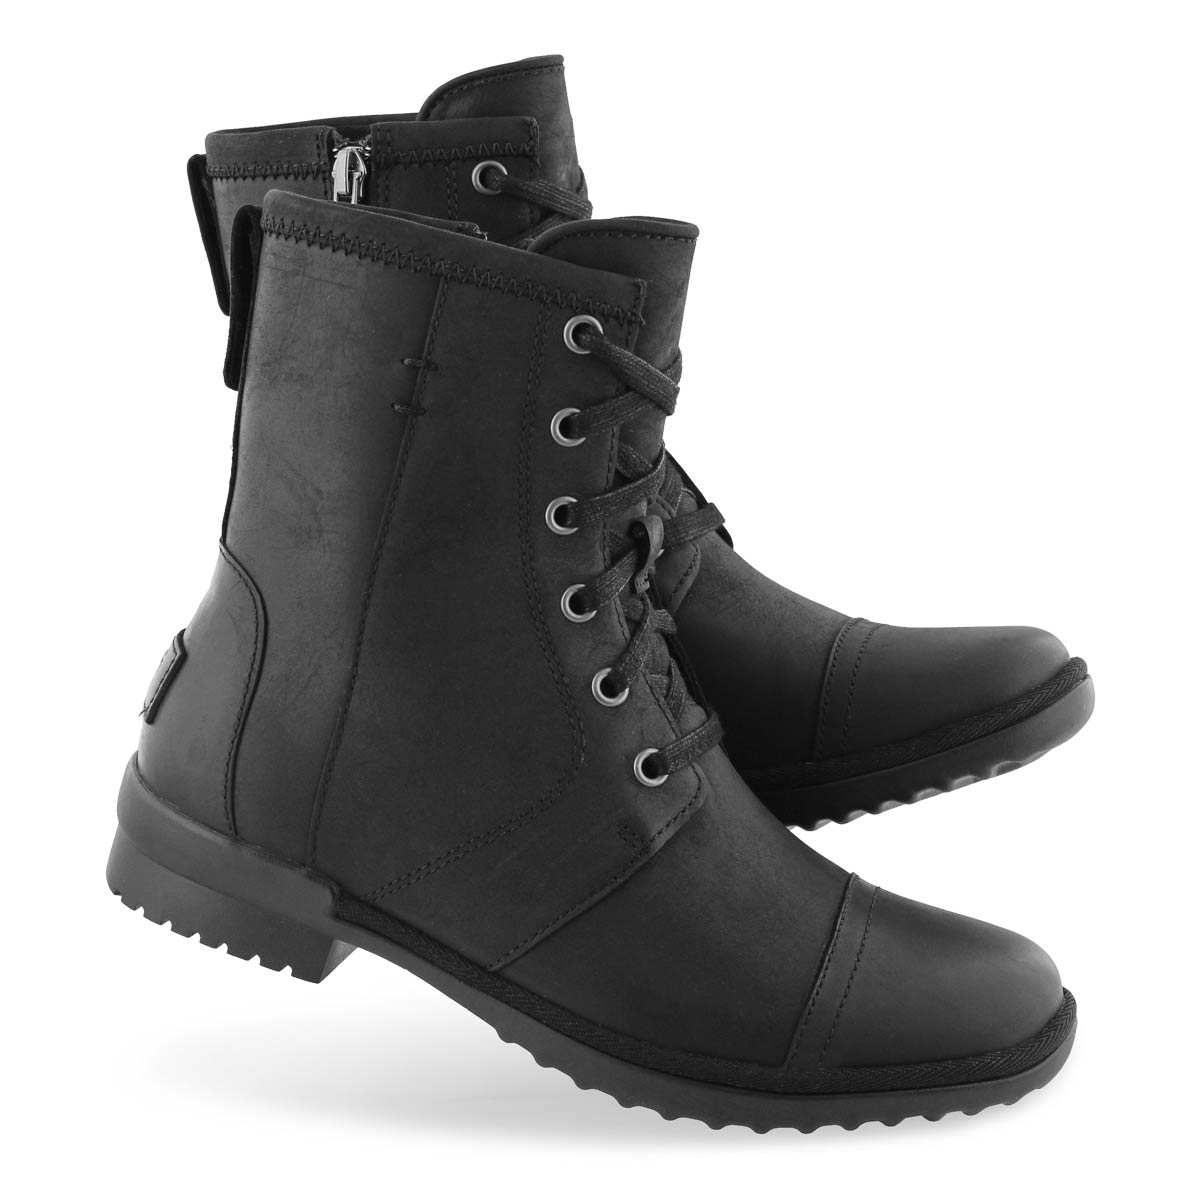 Lds Ashbury black lace up wptf boot